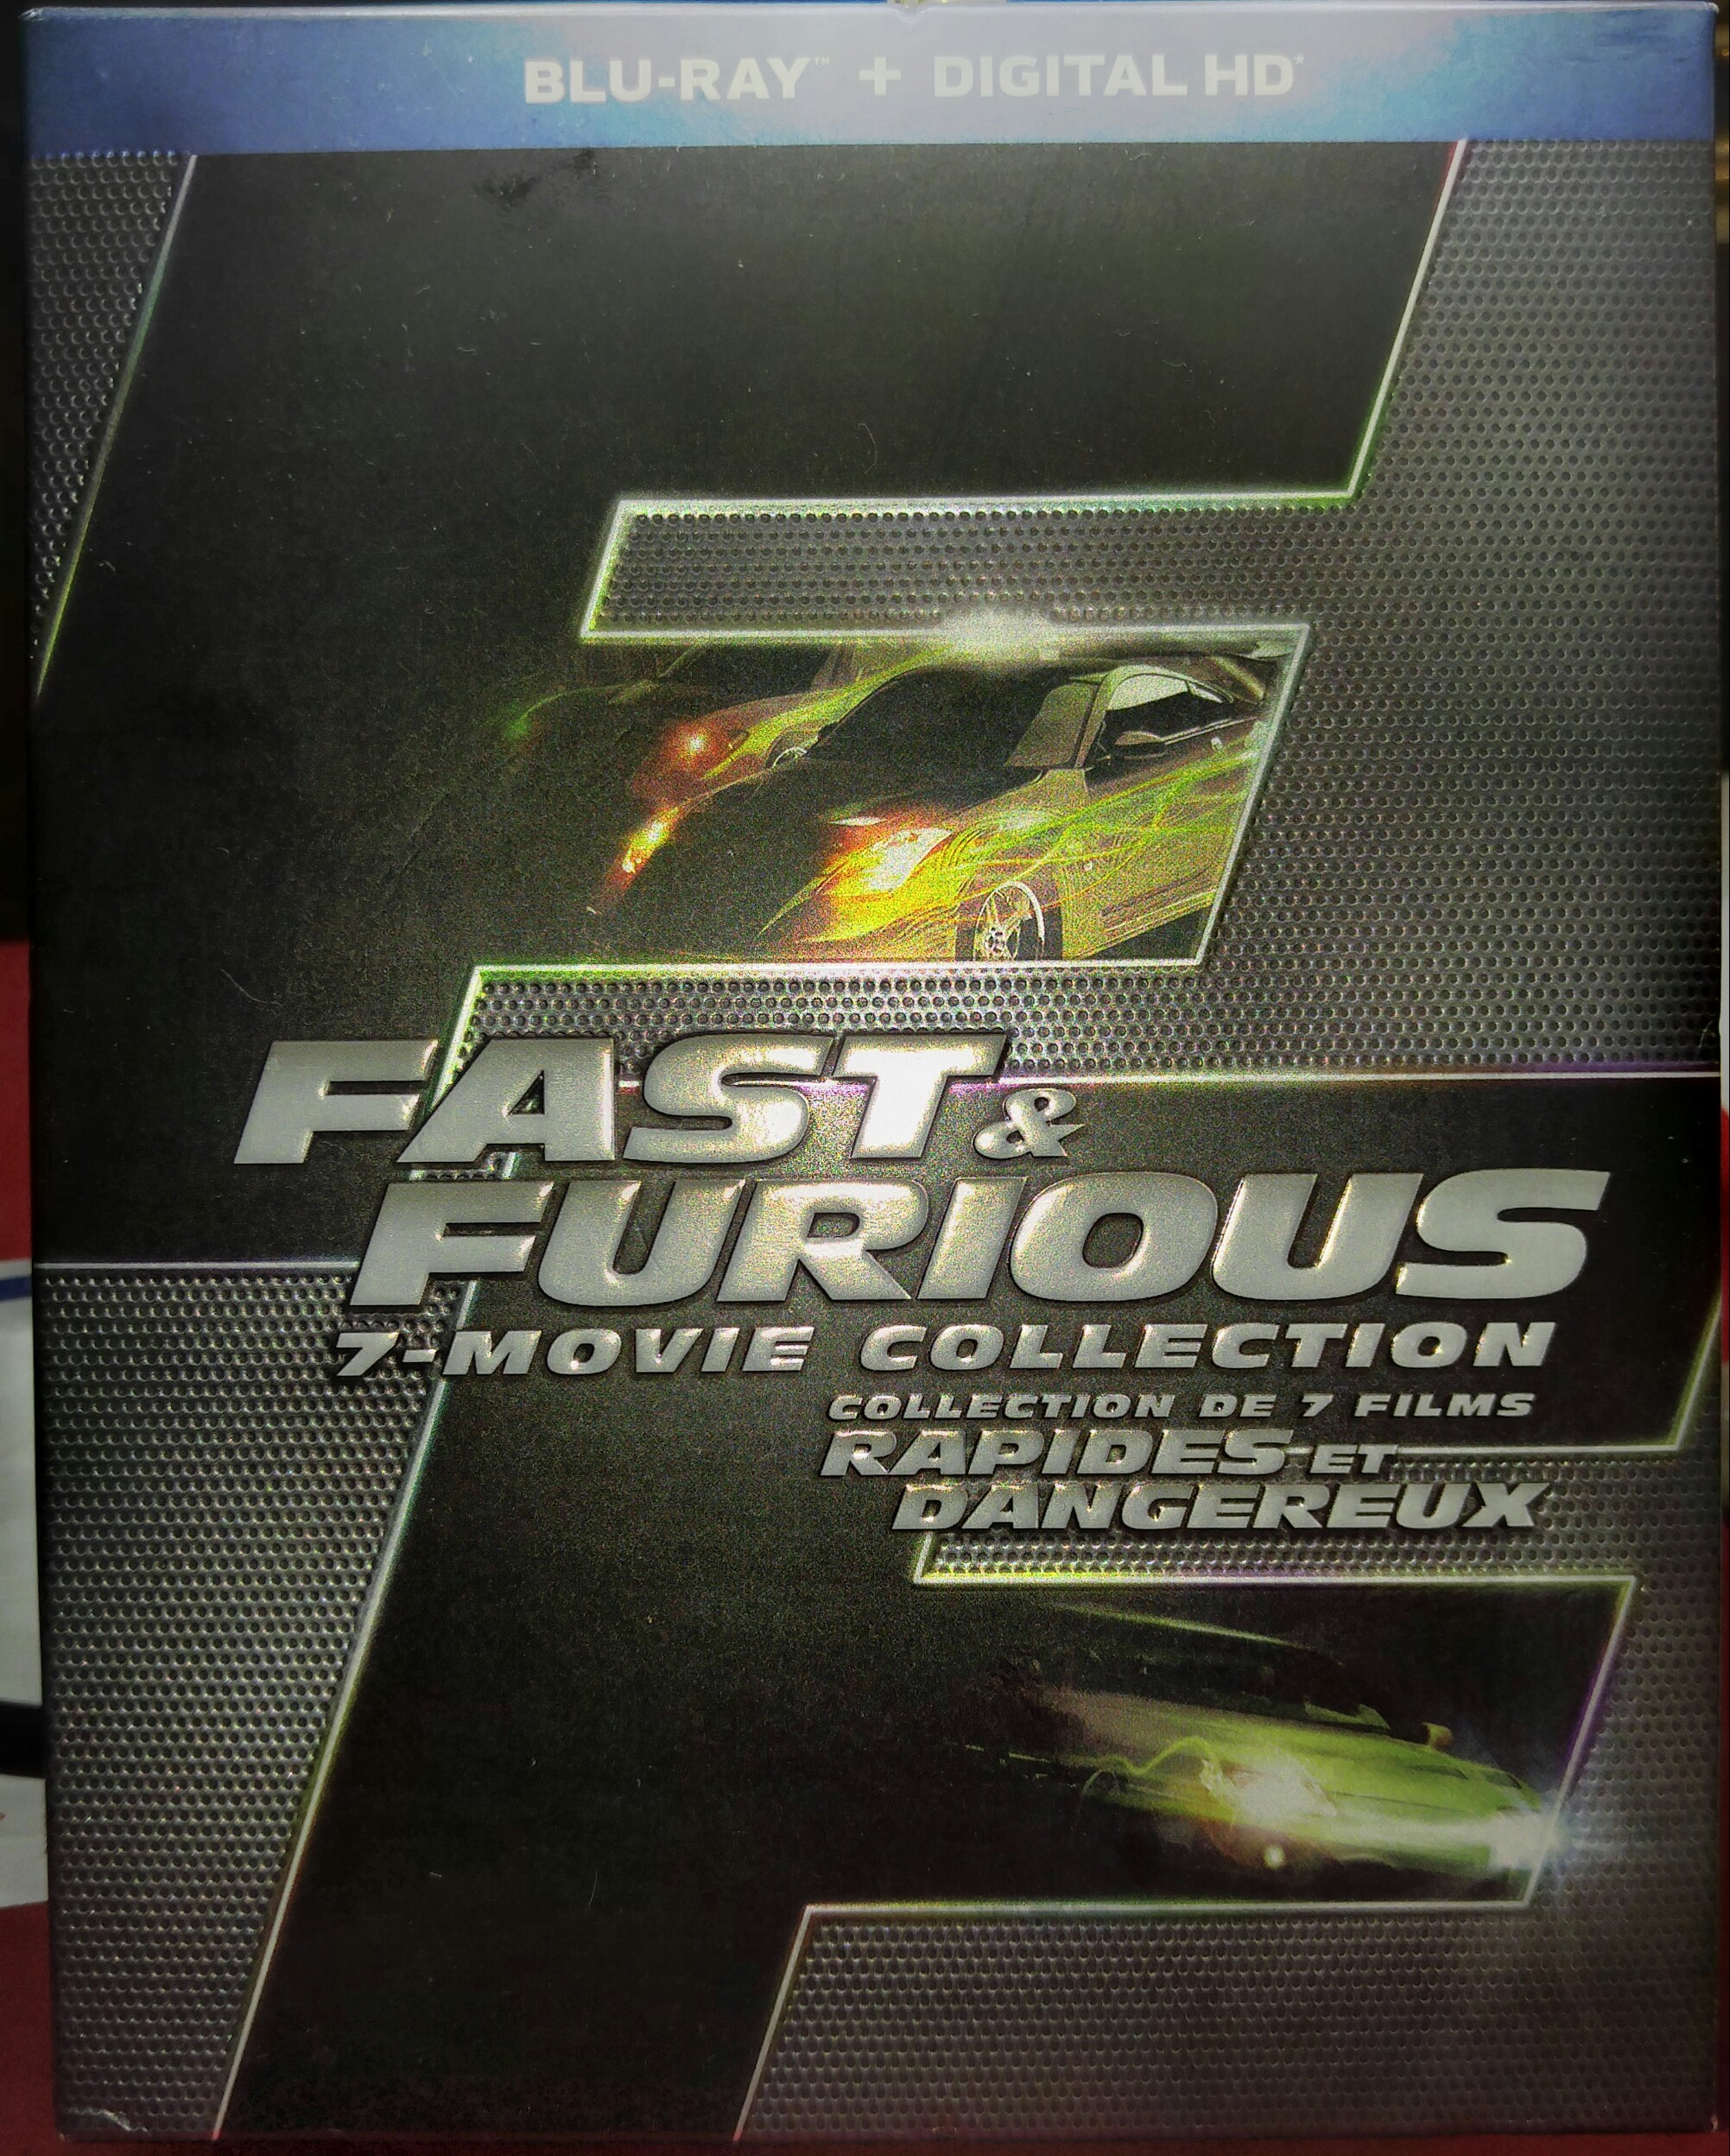 7 - movie collection Fast & Furious